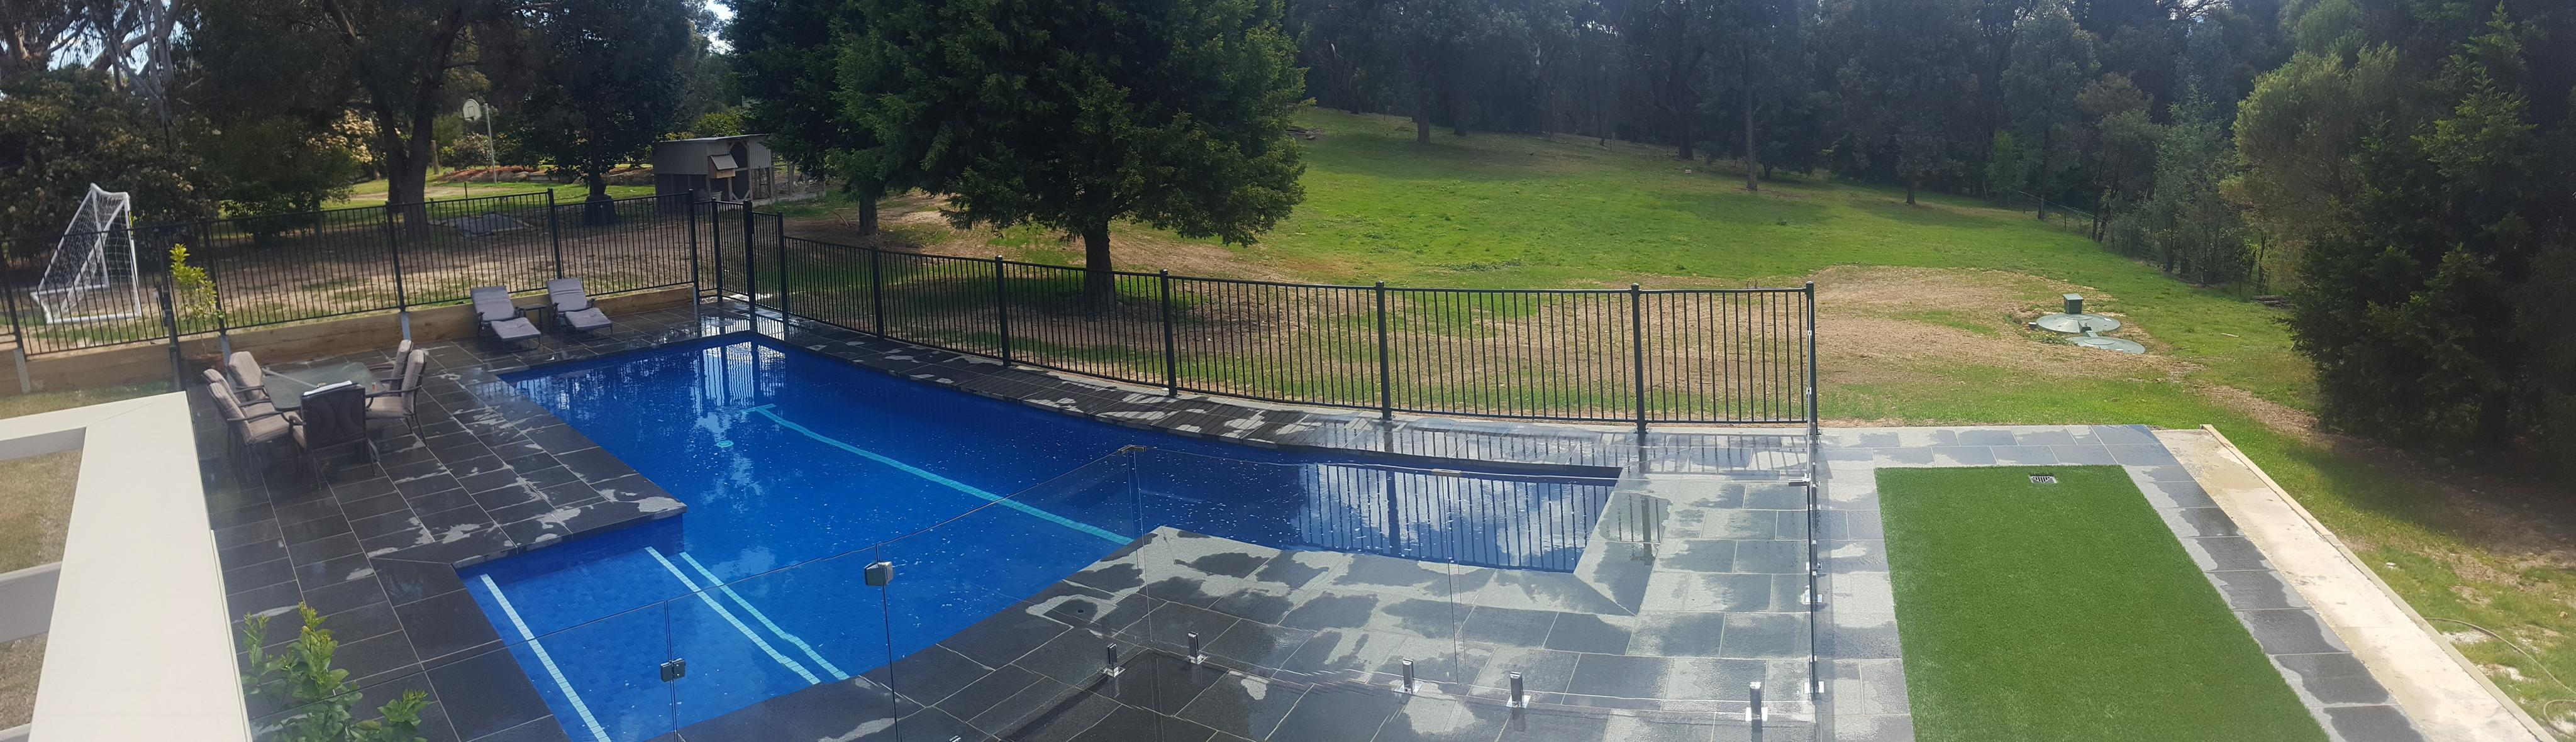 panton-hill-pool-design2